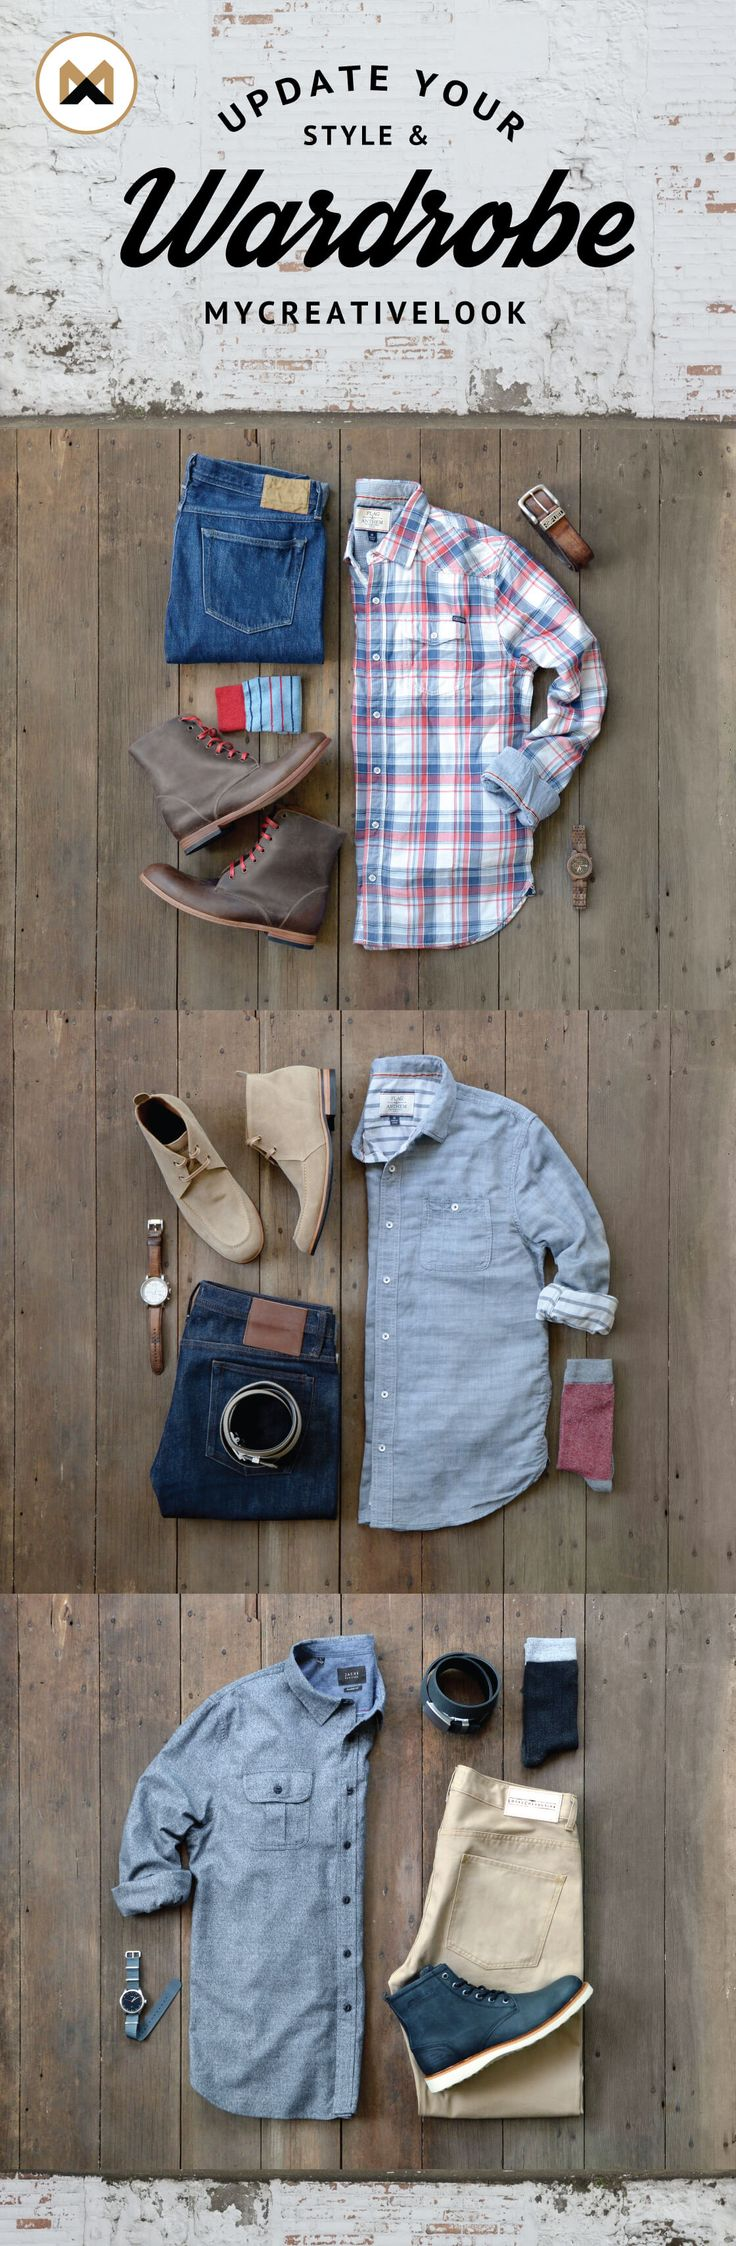 Update Your Style & Wardrobe by checking out Men's collections from MyCreativeLook   Casual Wear   Outfits   Fall Fashion   Sneakers and more. Visit stylecoordinators.com